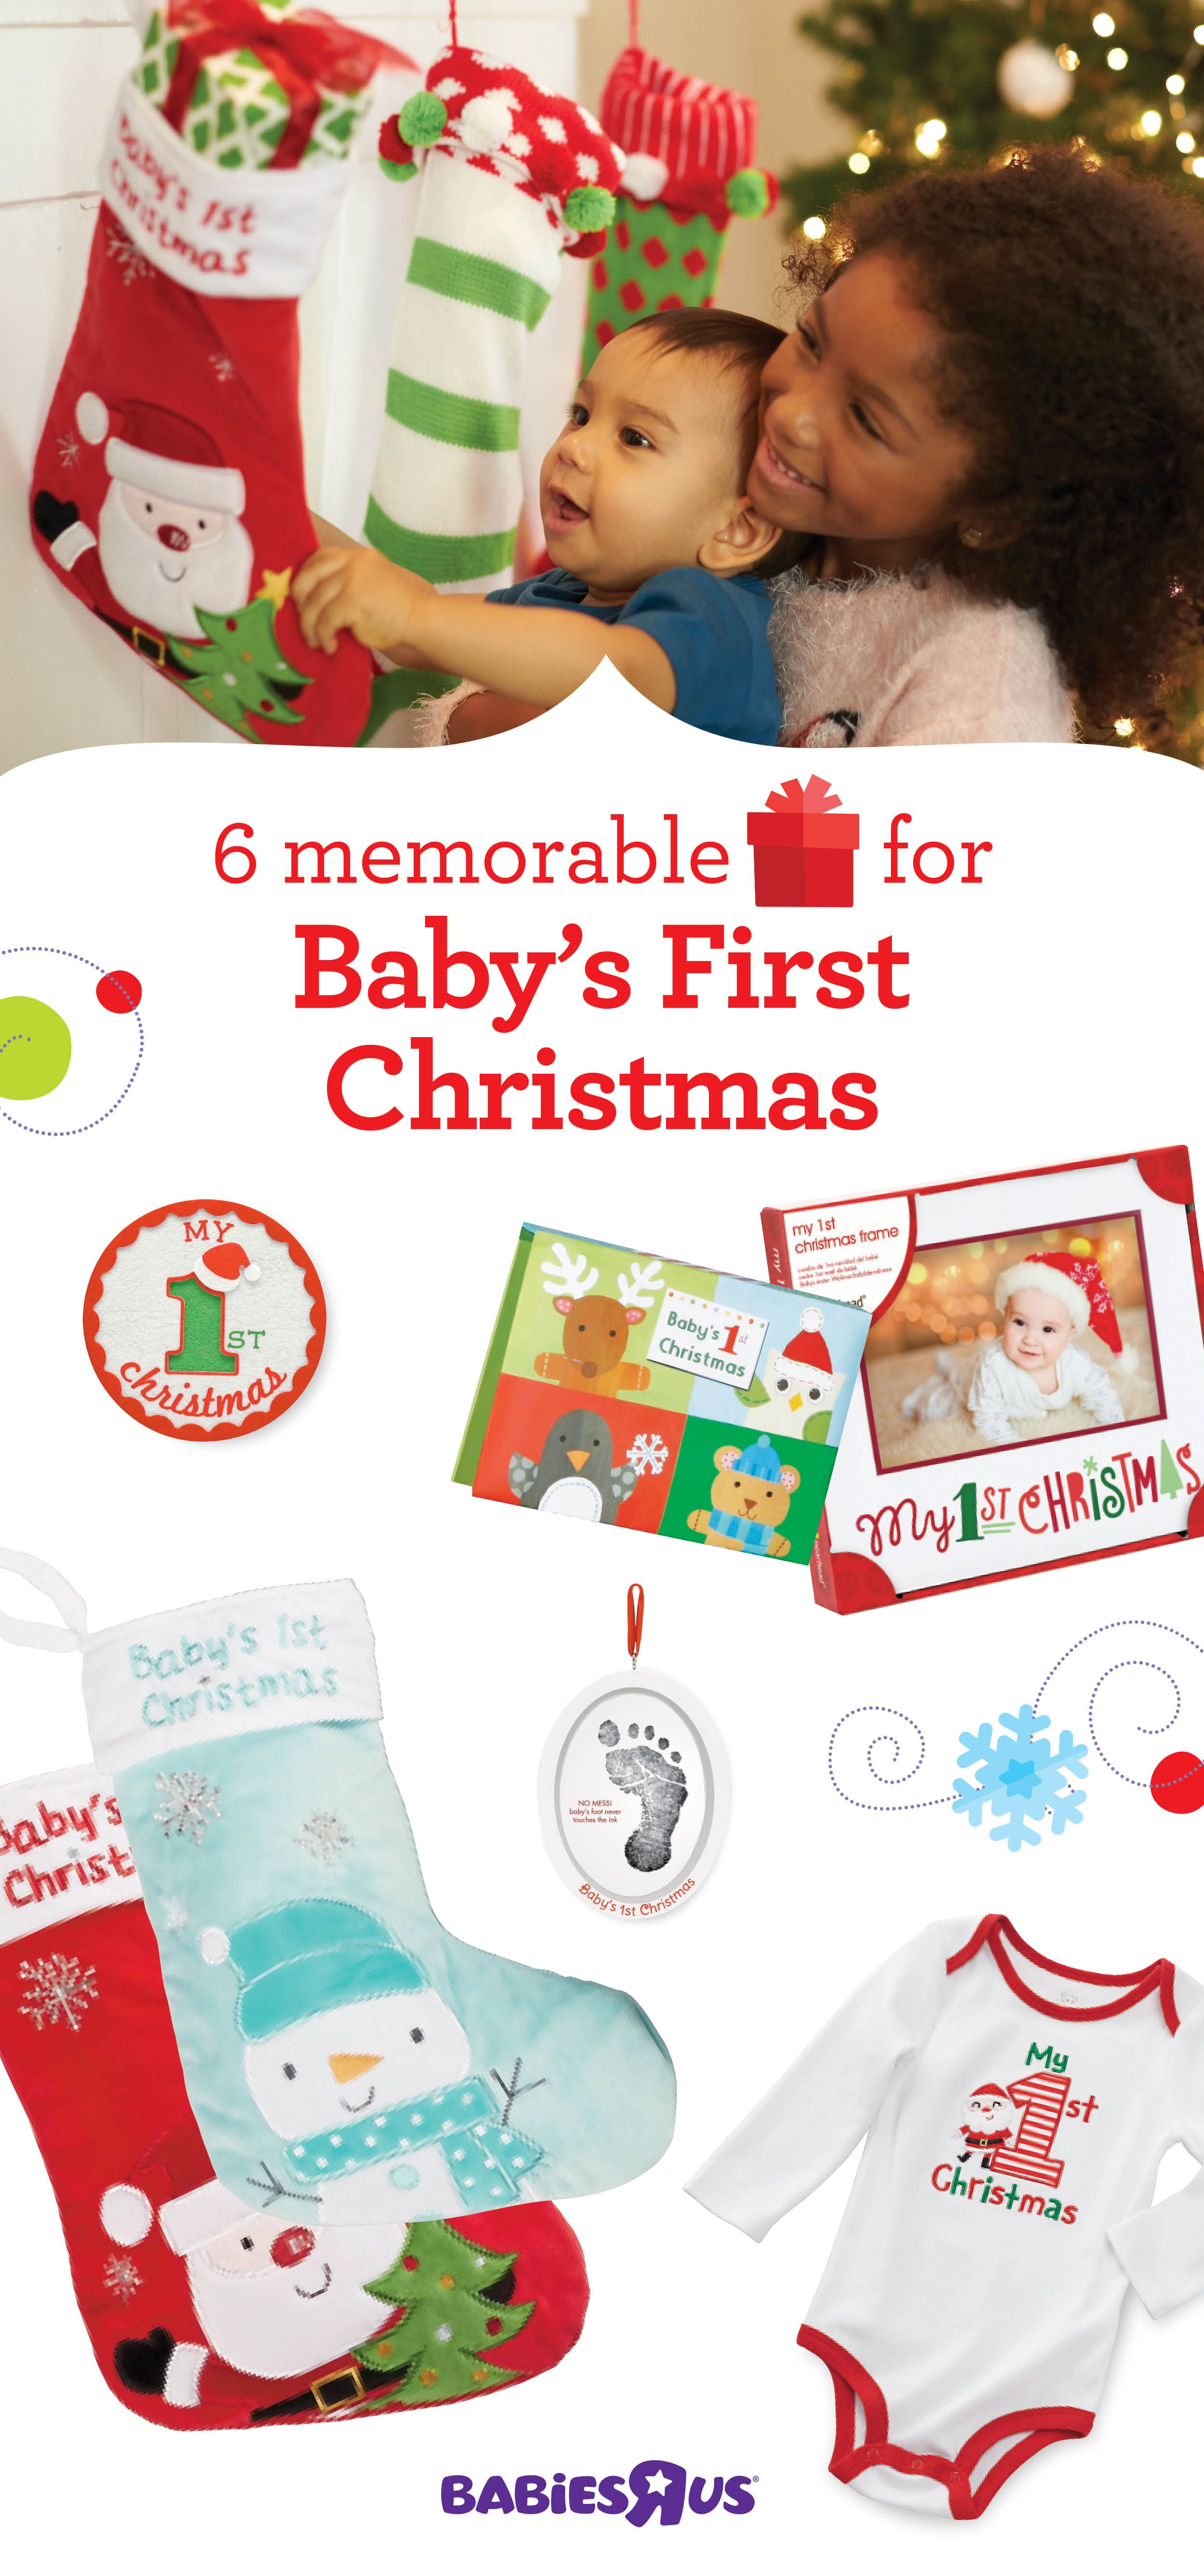 50 Best Baby S First Christmas Gifts Keepsakes Images Babies First Christmas First Christmas Baby S First Christmas Gifts